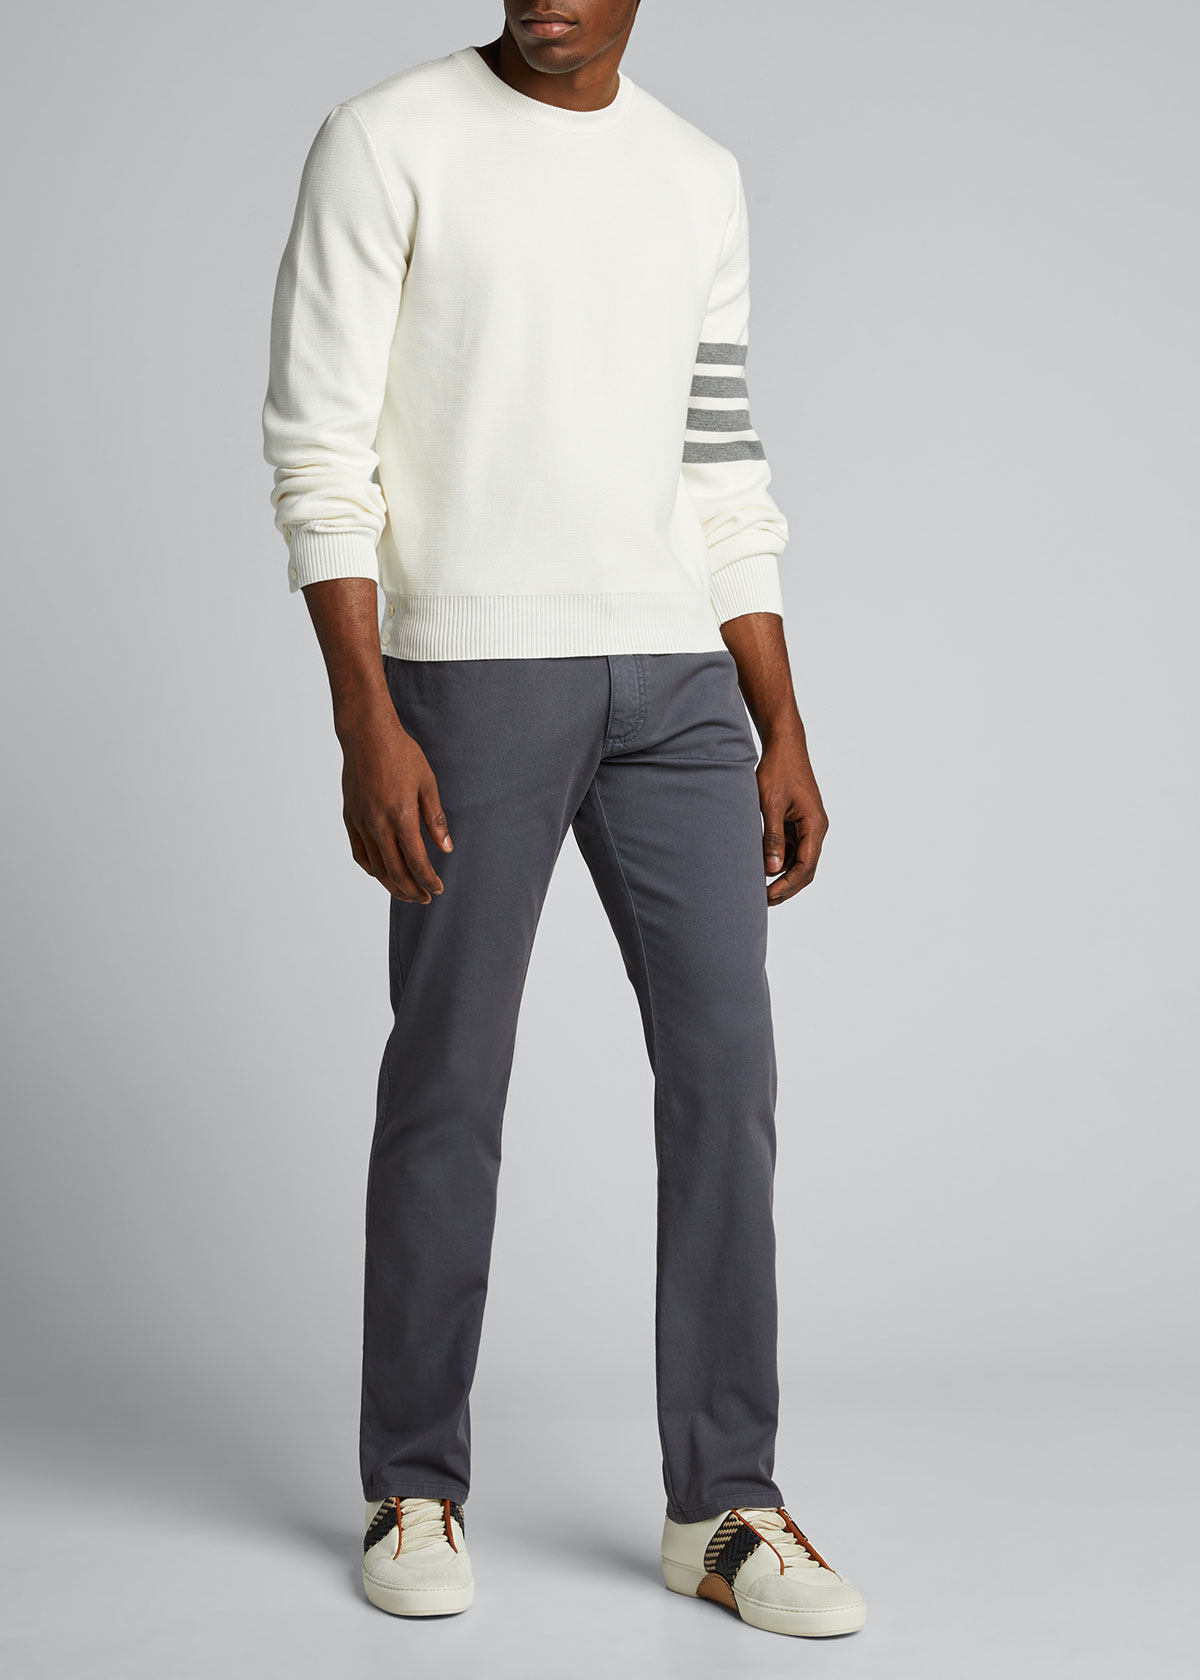 Thom Browne Cottons MEN'S MILANO-STITCH CREWNECK TOP